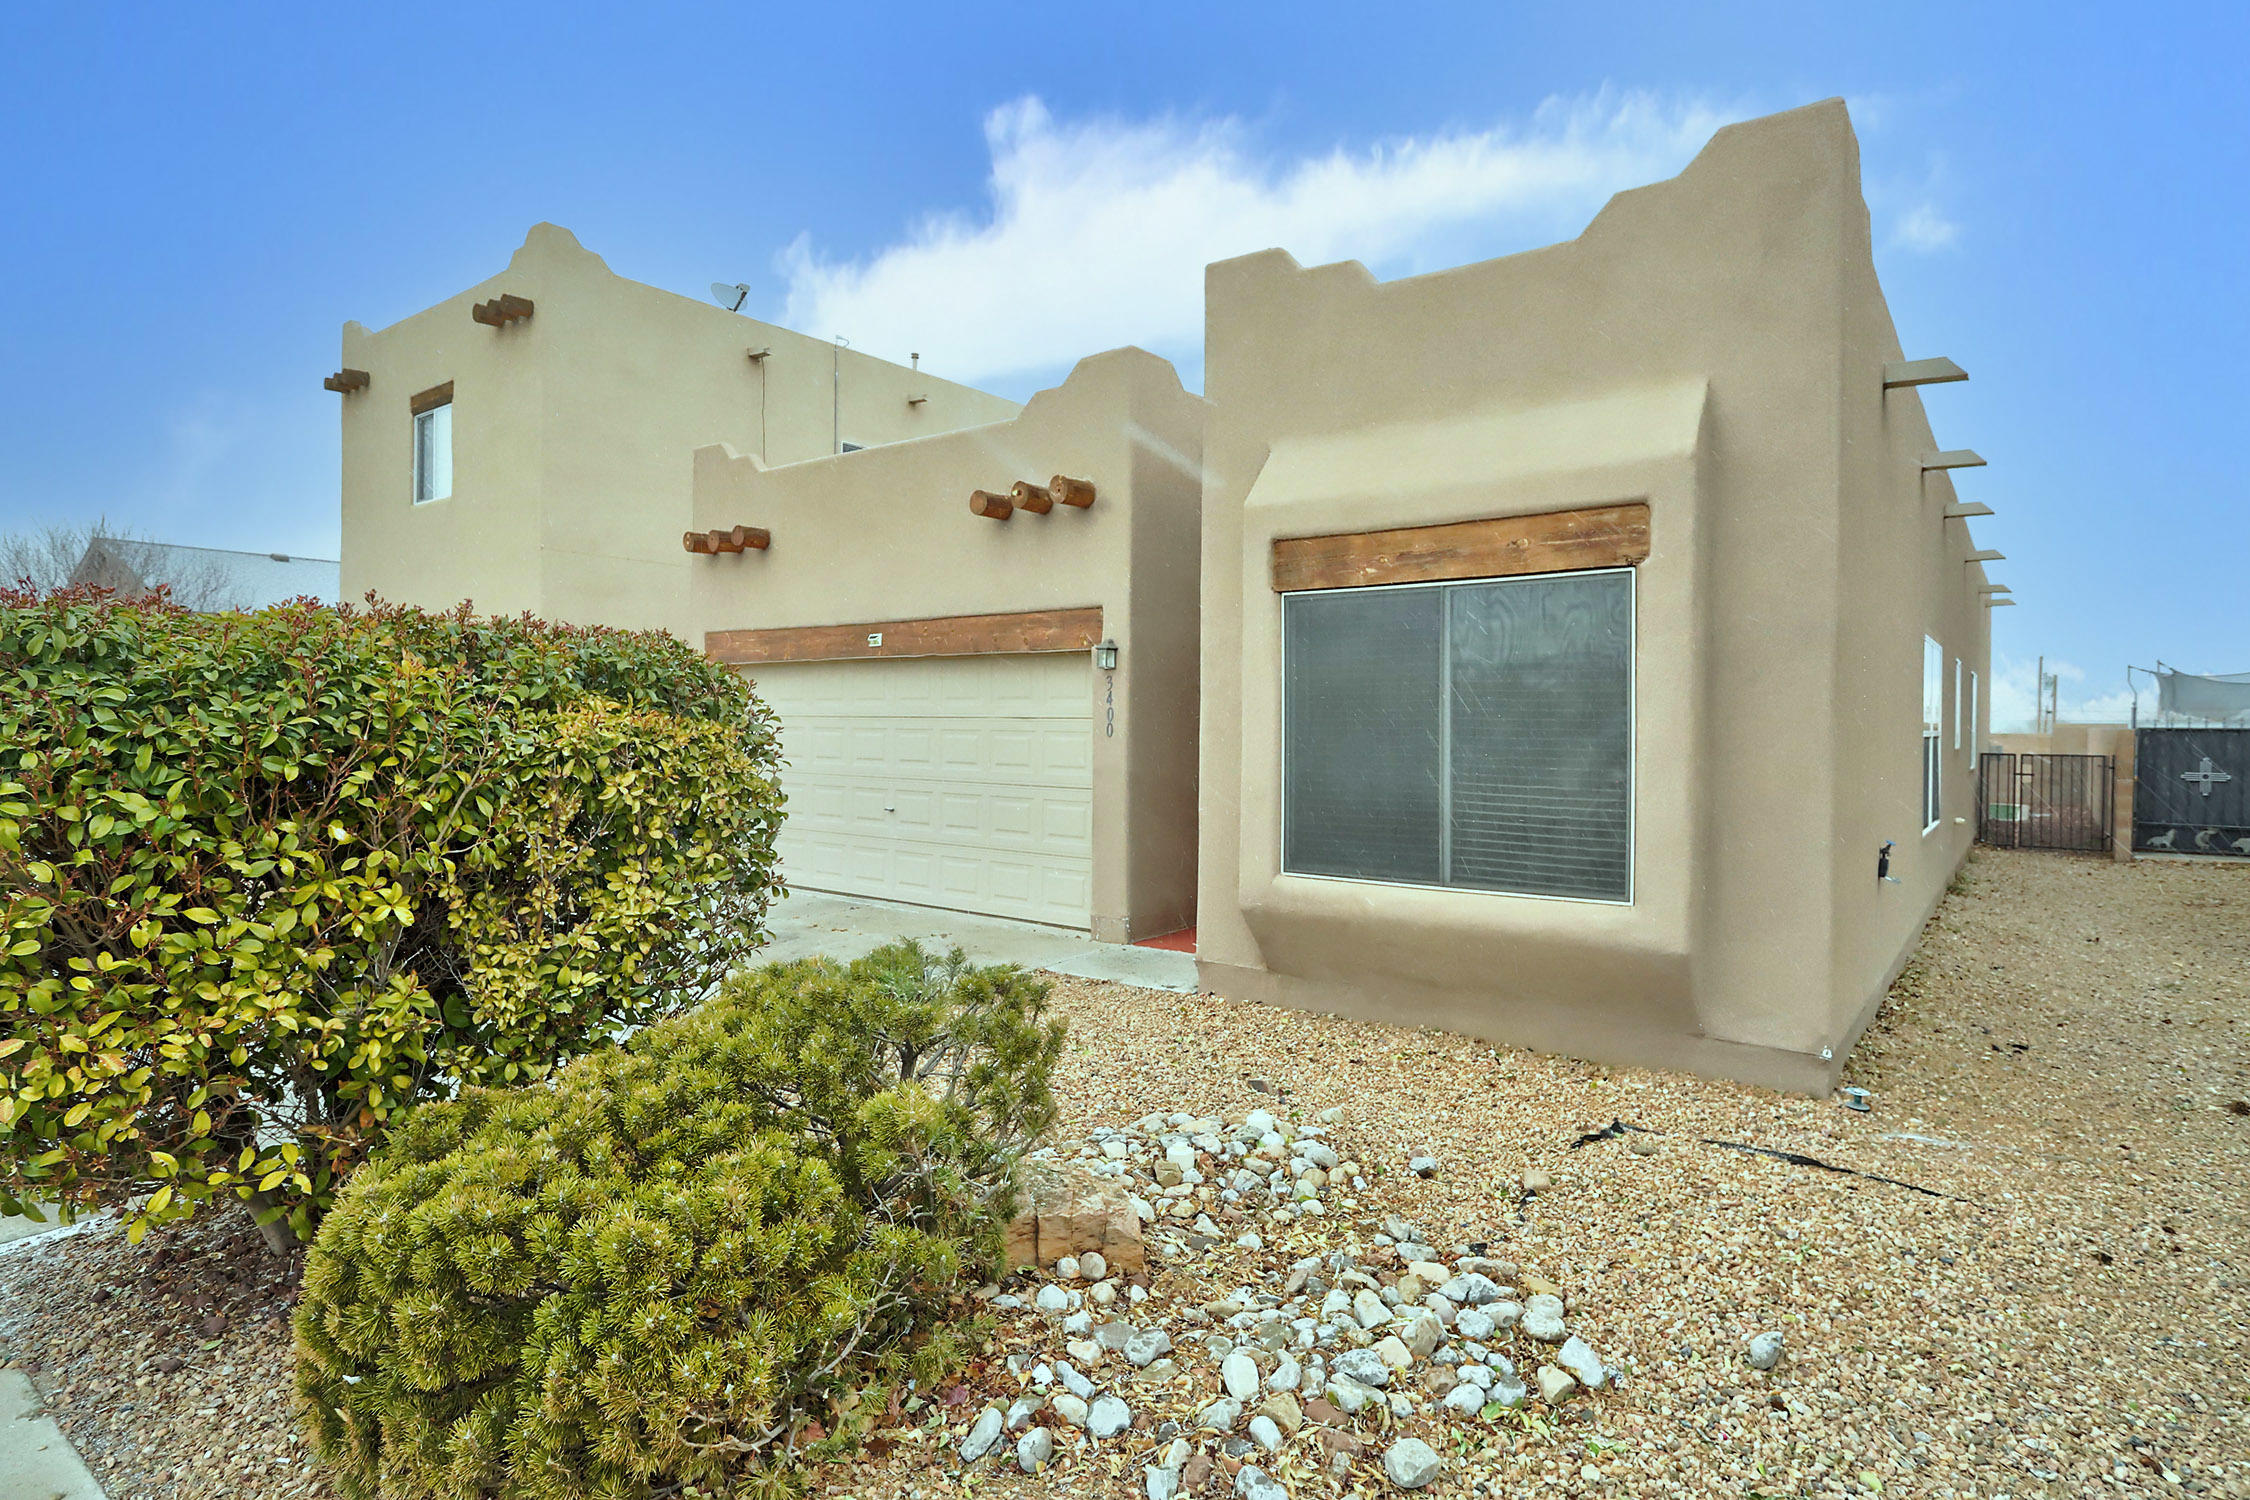 You're not going to want to miss out on this beautiful and spacious home! This one has a breathtaking view of the Sandias, stone countertops, refrigerated air, a warm and cozy fireplace and is complemented by the finished backyard with artificial turf making your backyard oasis easy to maintain. Don't miss out on your opportunity to call this one yours.